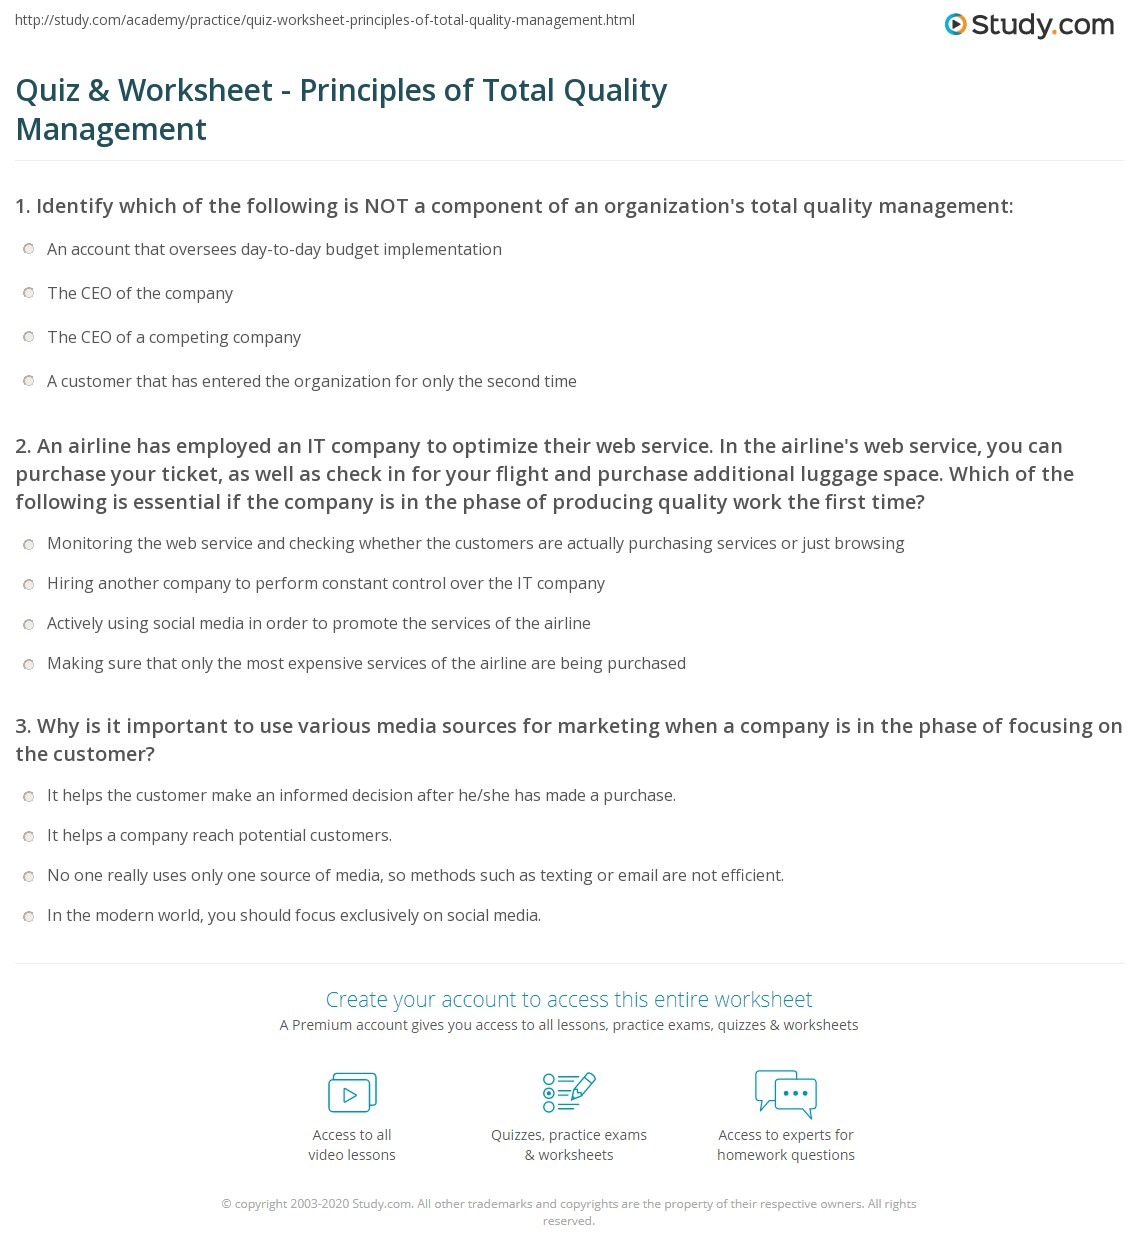 total quality management research paper International journal of scientific and research publications, volume 3 this paper is a comparative total quality management principles and baldrige model.